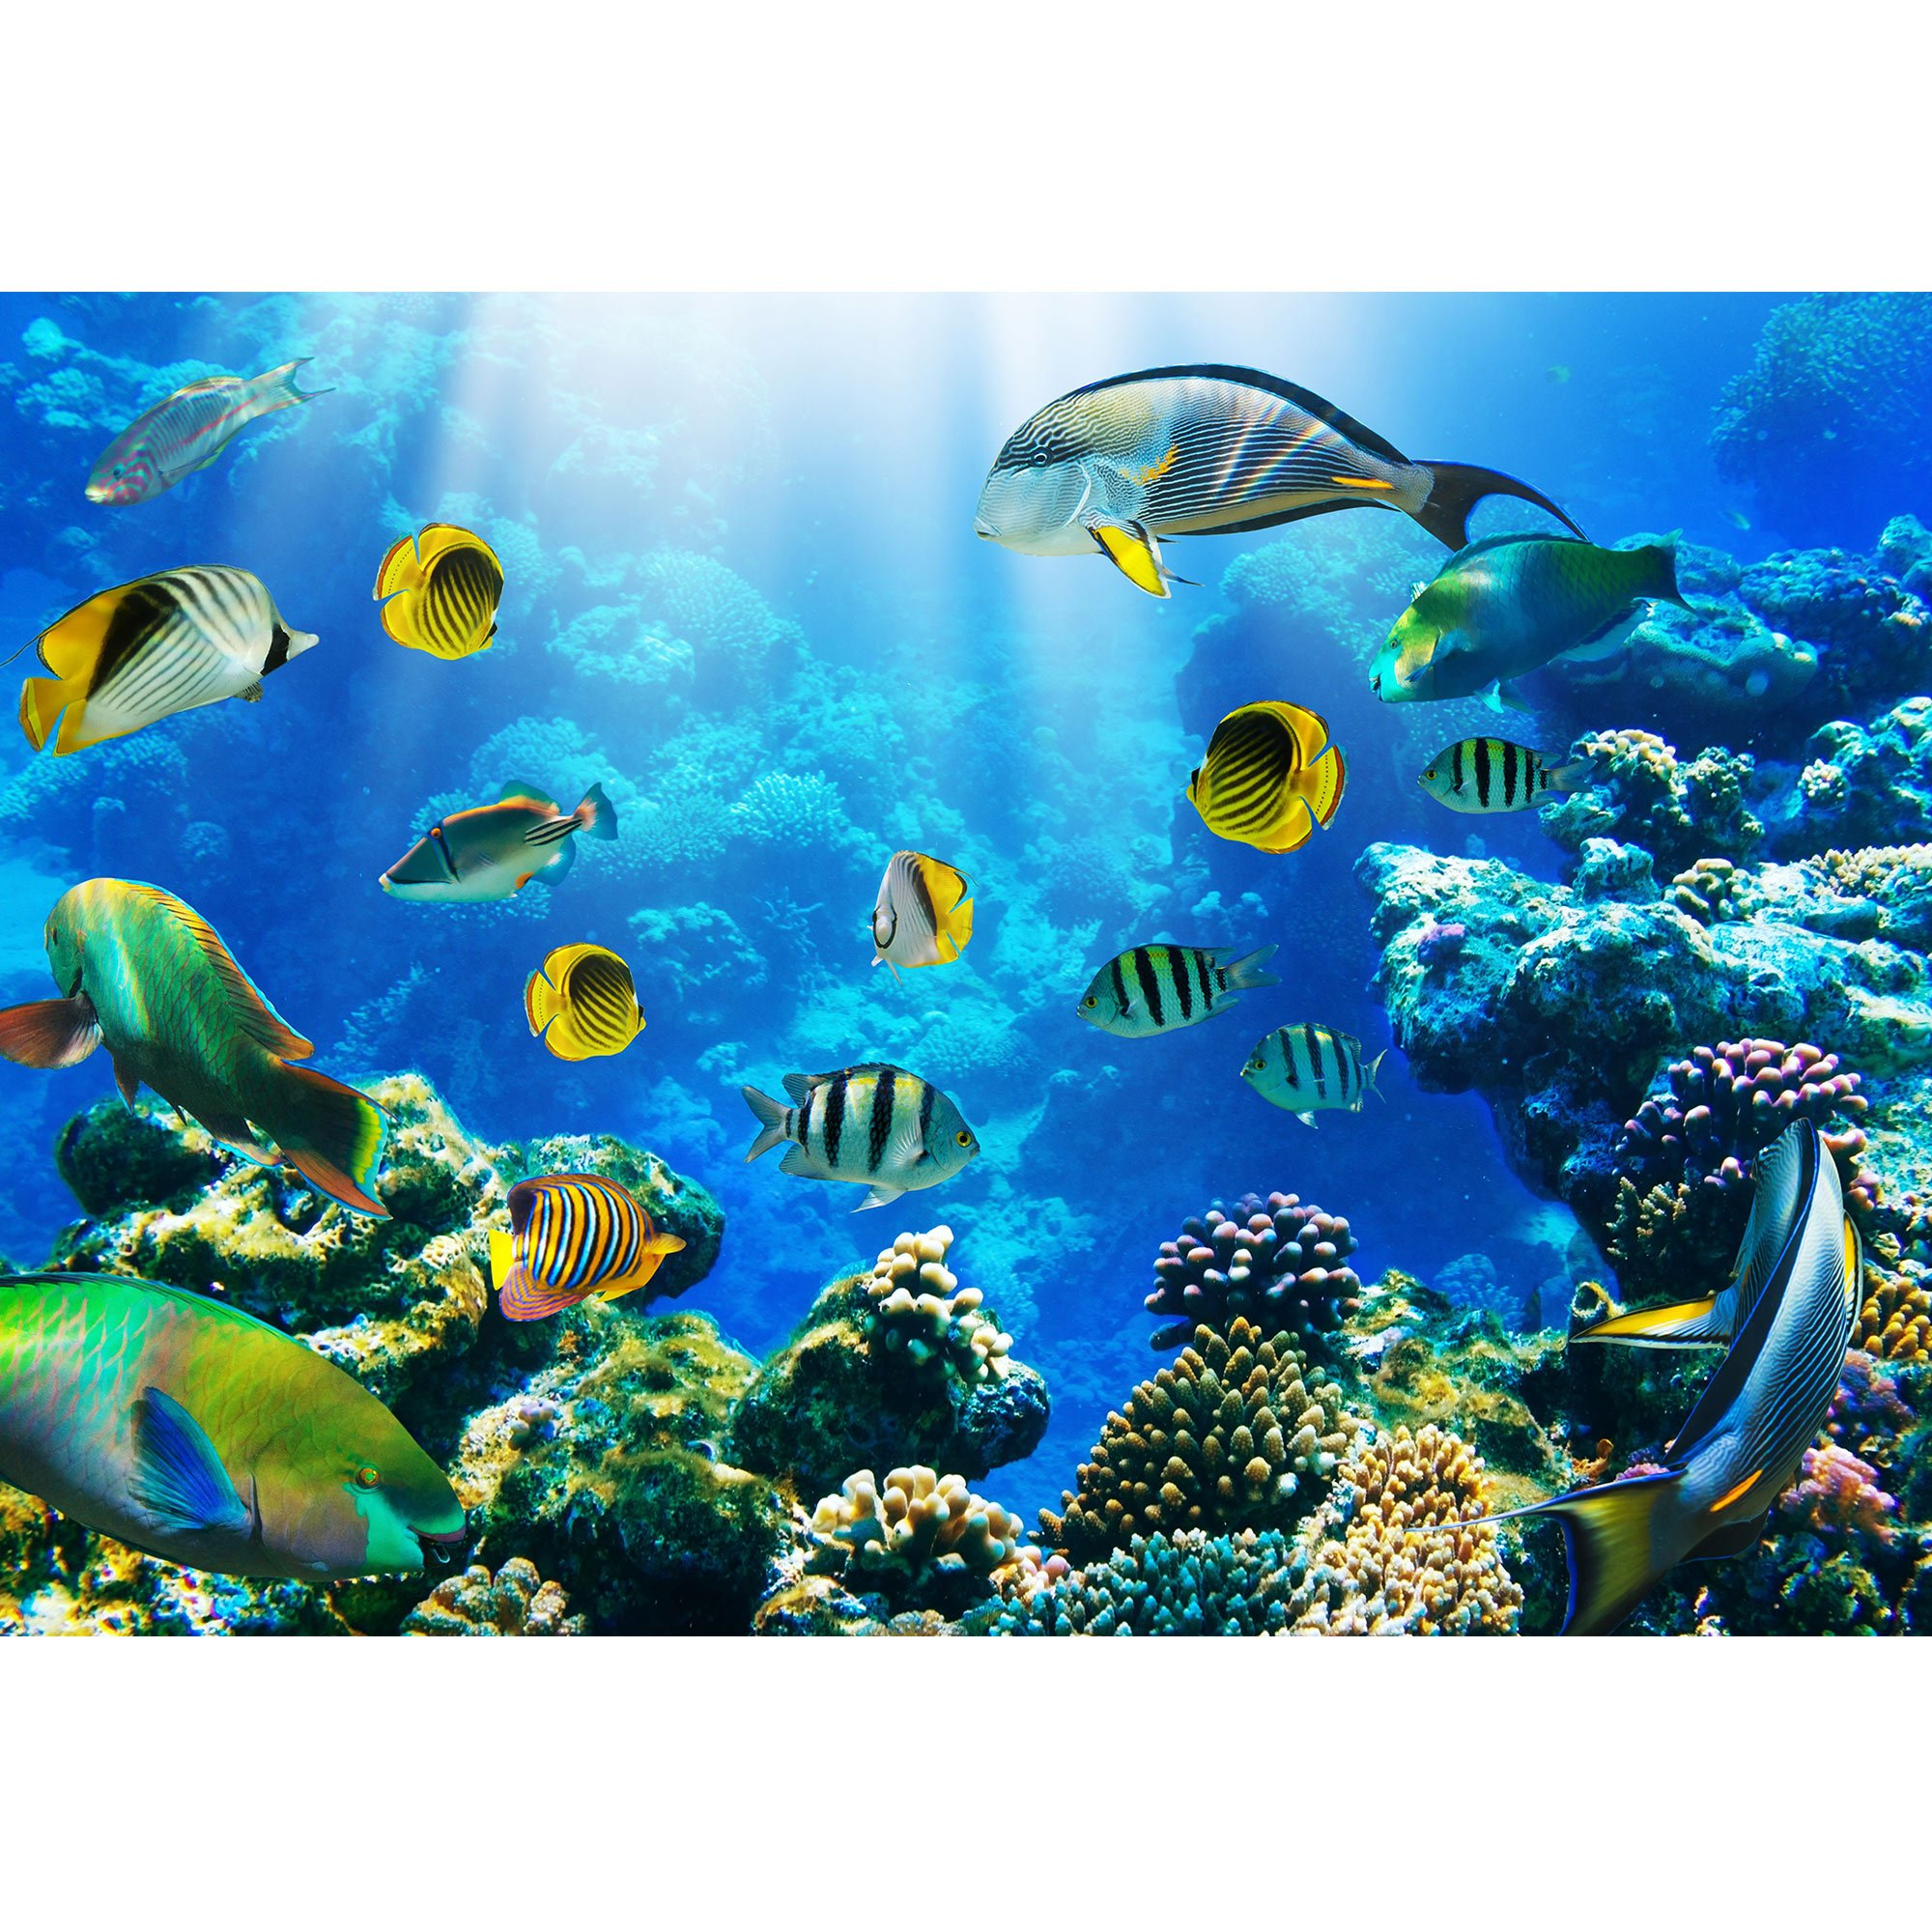 wall26 - Photo of a Tropical Fish on a Coral Reef - Removable Wall Mural | Self-adhesive Large Wallpaper - 100x144 inches by wall26 (Image #2)